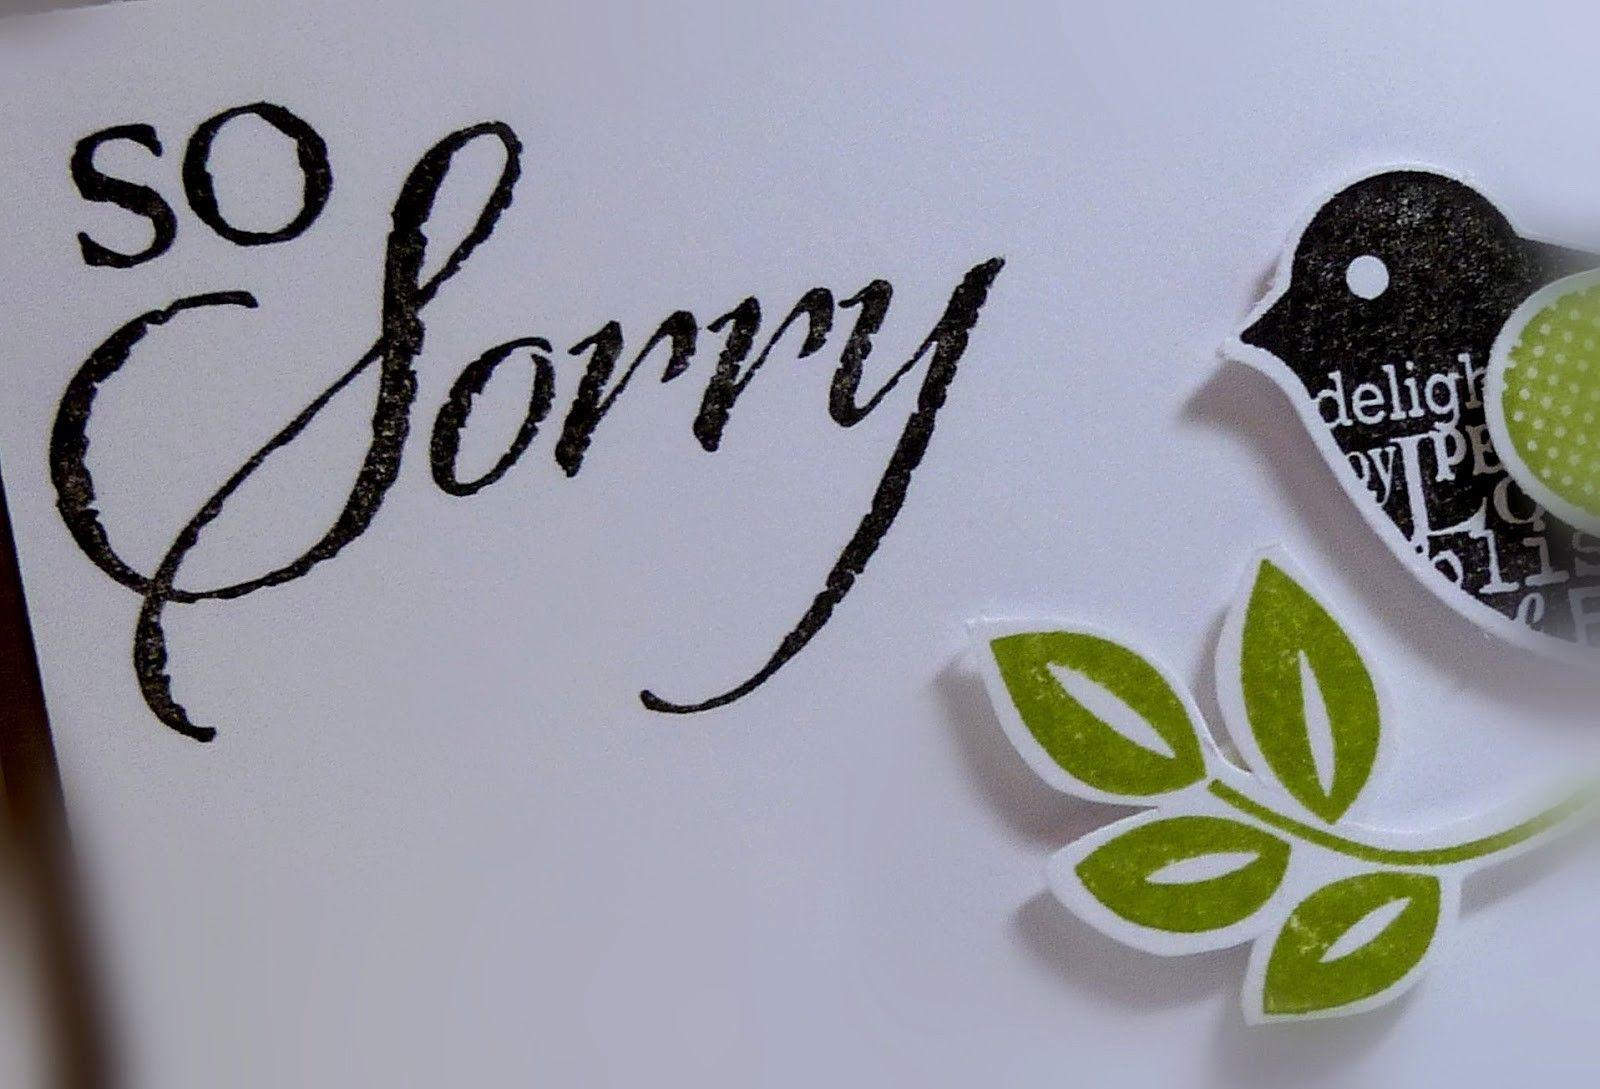 Sorry Wallpapers - Sorry Live Images, HD Wallpapers - Wallpapers-Web.com · Download